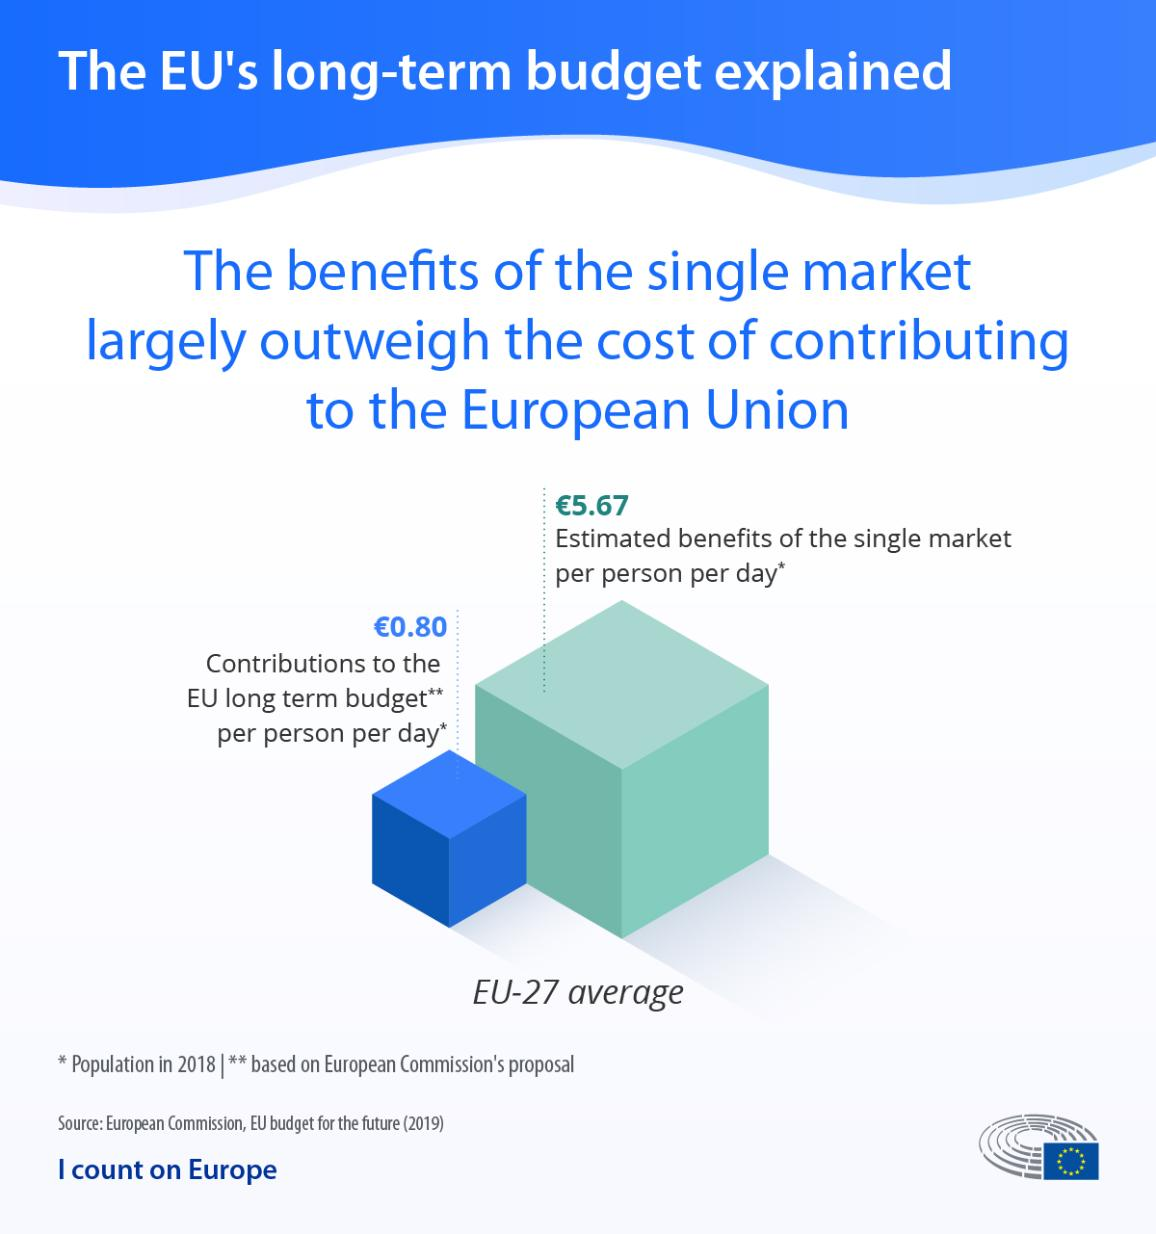 Infographic on the EU long-term budget showing the benefits of the single market outweigh the cost of contributing to the EU